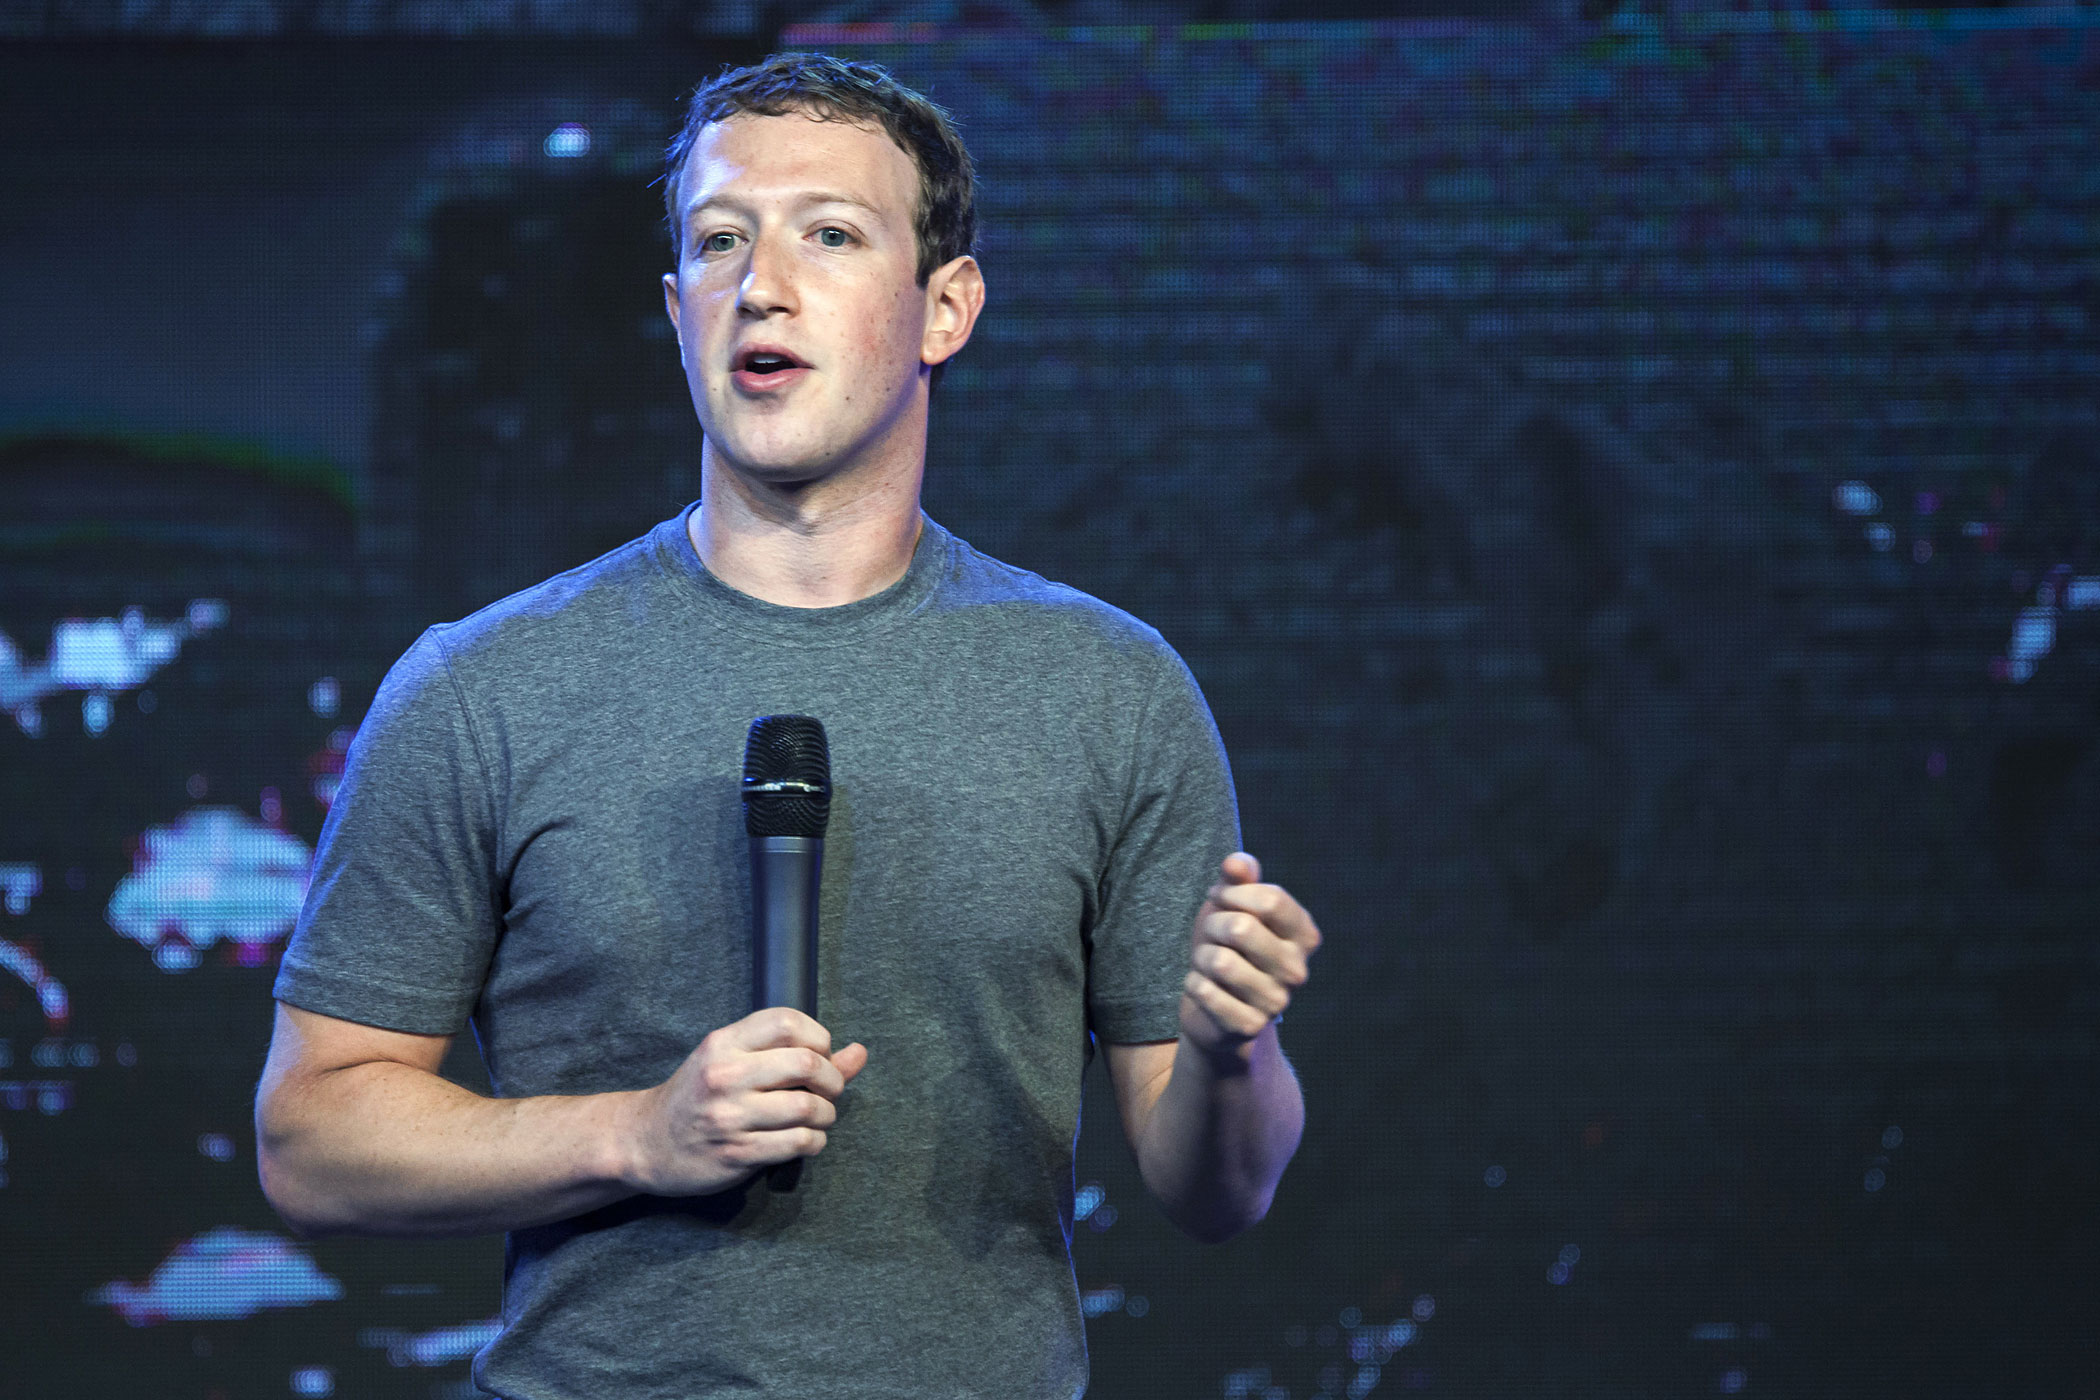 Mark Zuckerberg, chief executive officer of Facebook Inc., speaks during the Internet.org summit in New Delhi, India, on Thursday, Oct. 9, 2014.